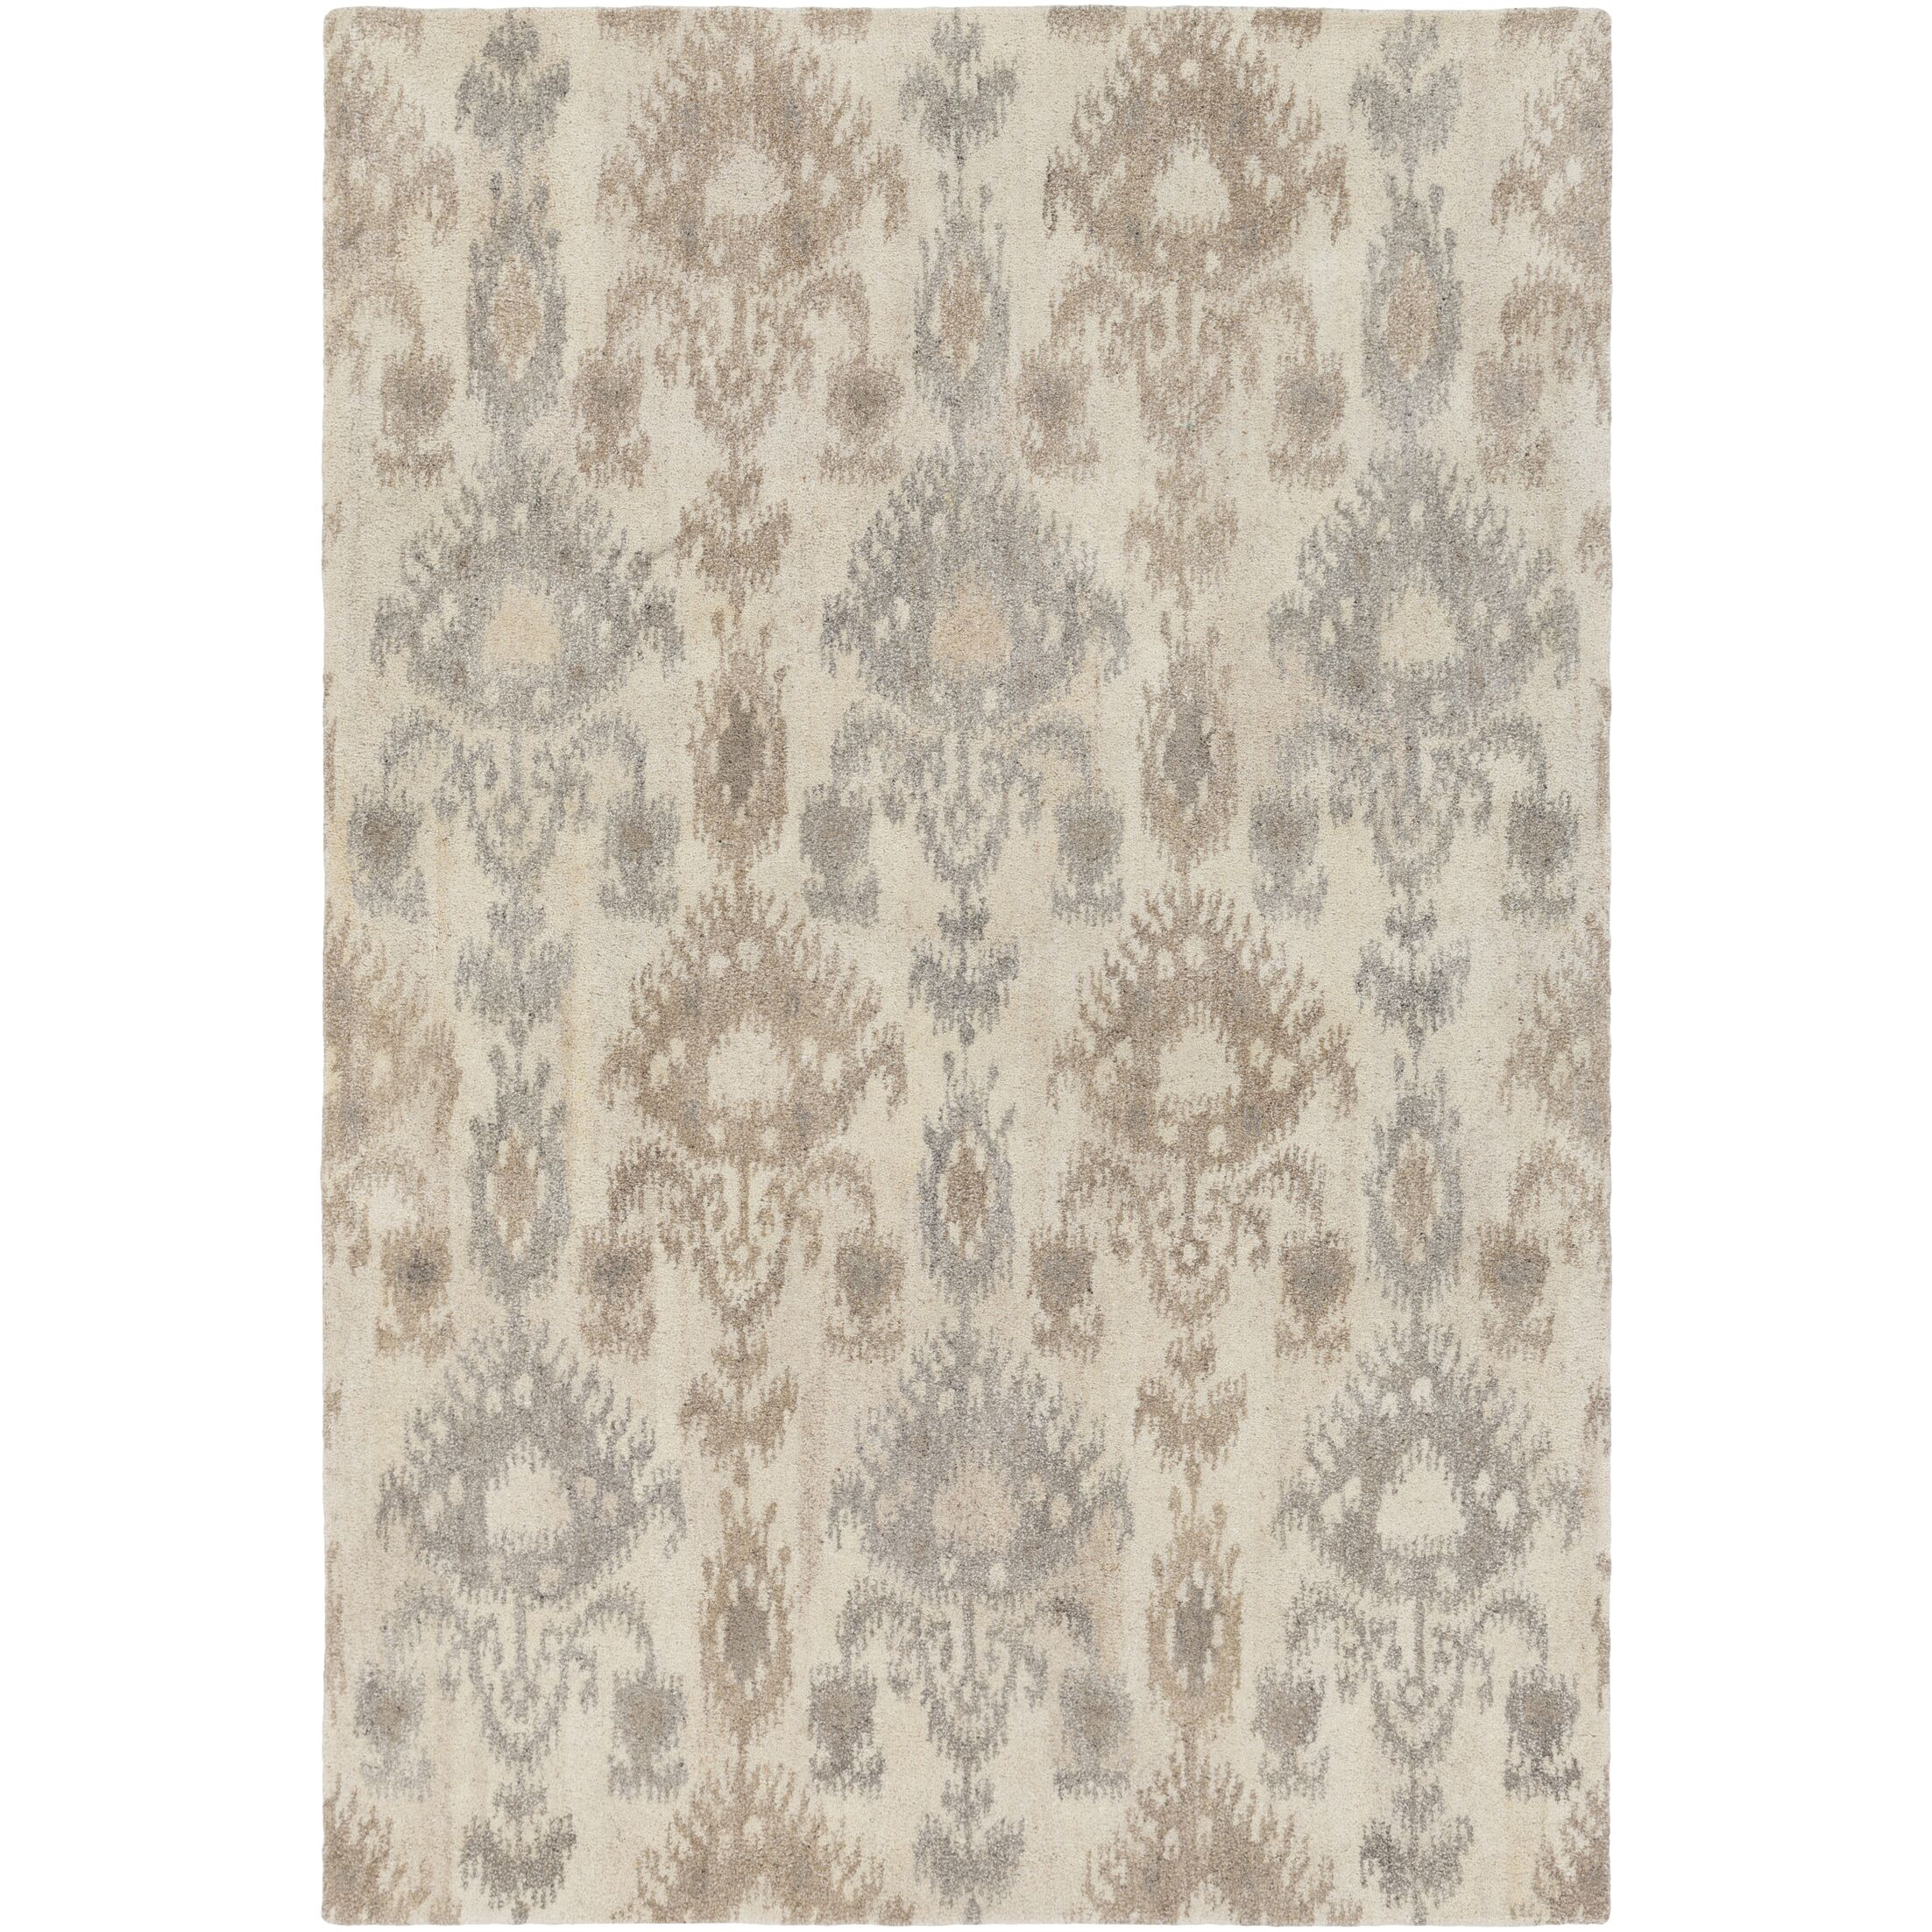 Lewis Hand-Tufted Cream/Taupe Area Rug Rug Size: Rectangle 8' x 10'